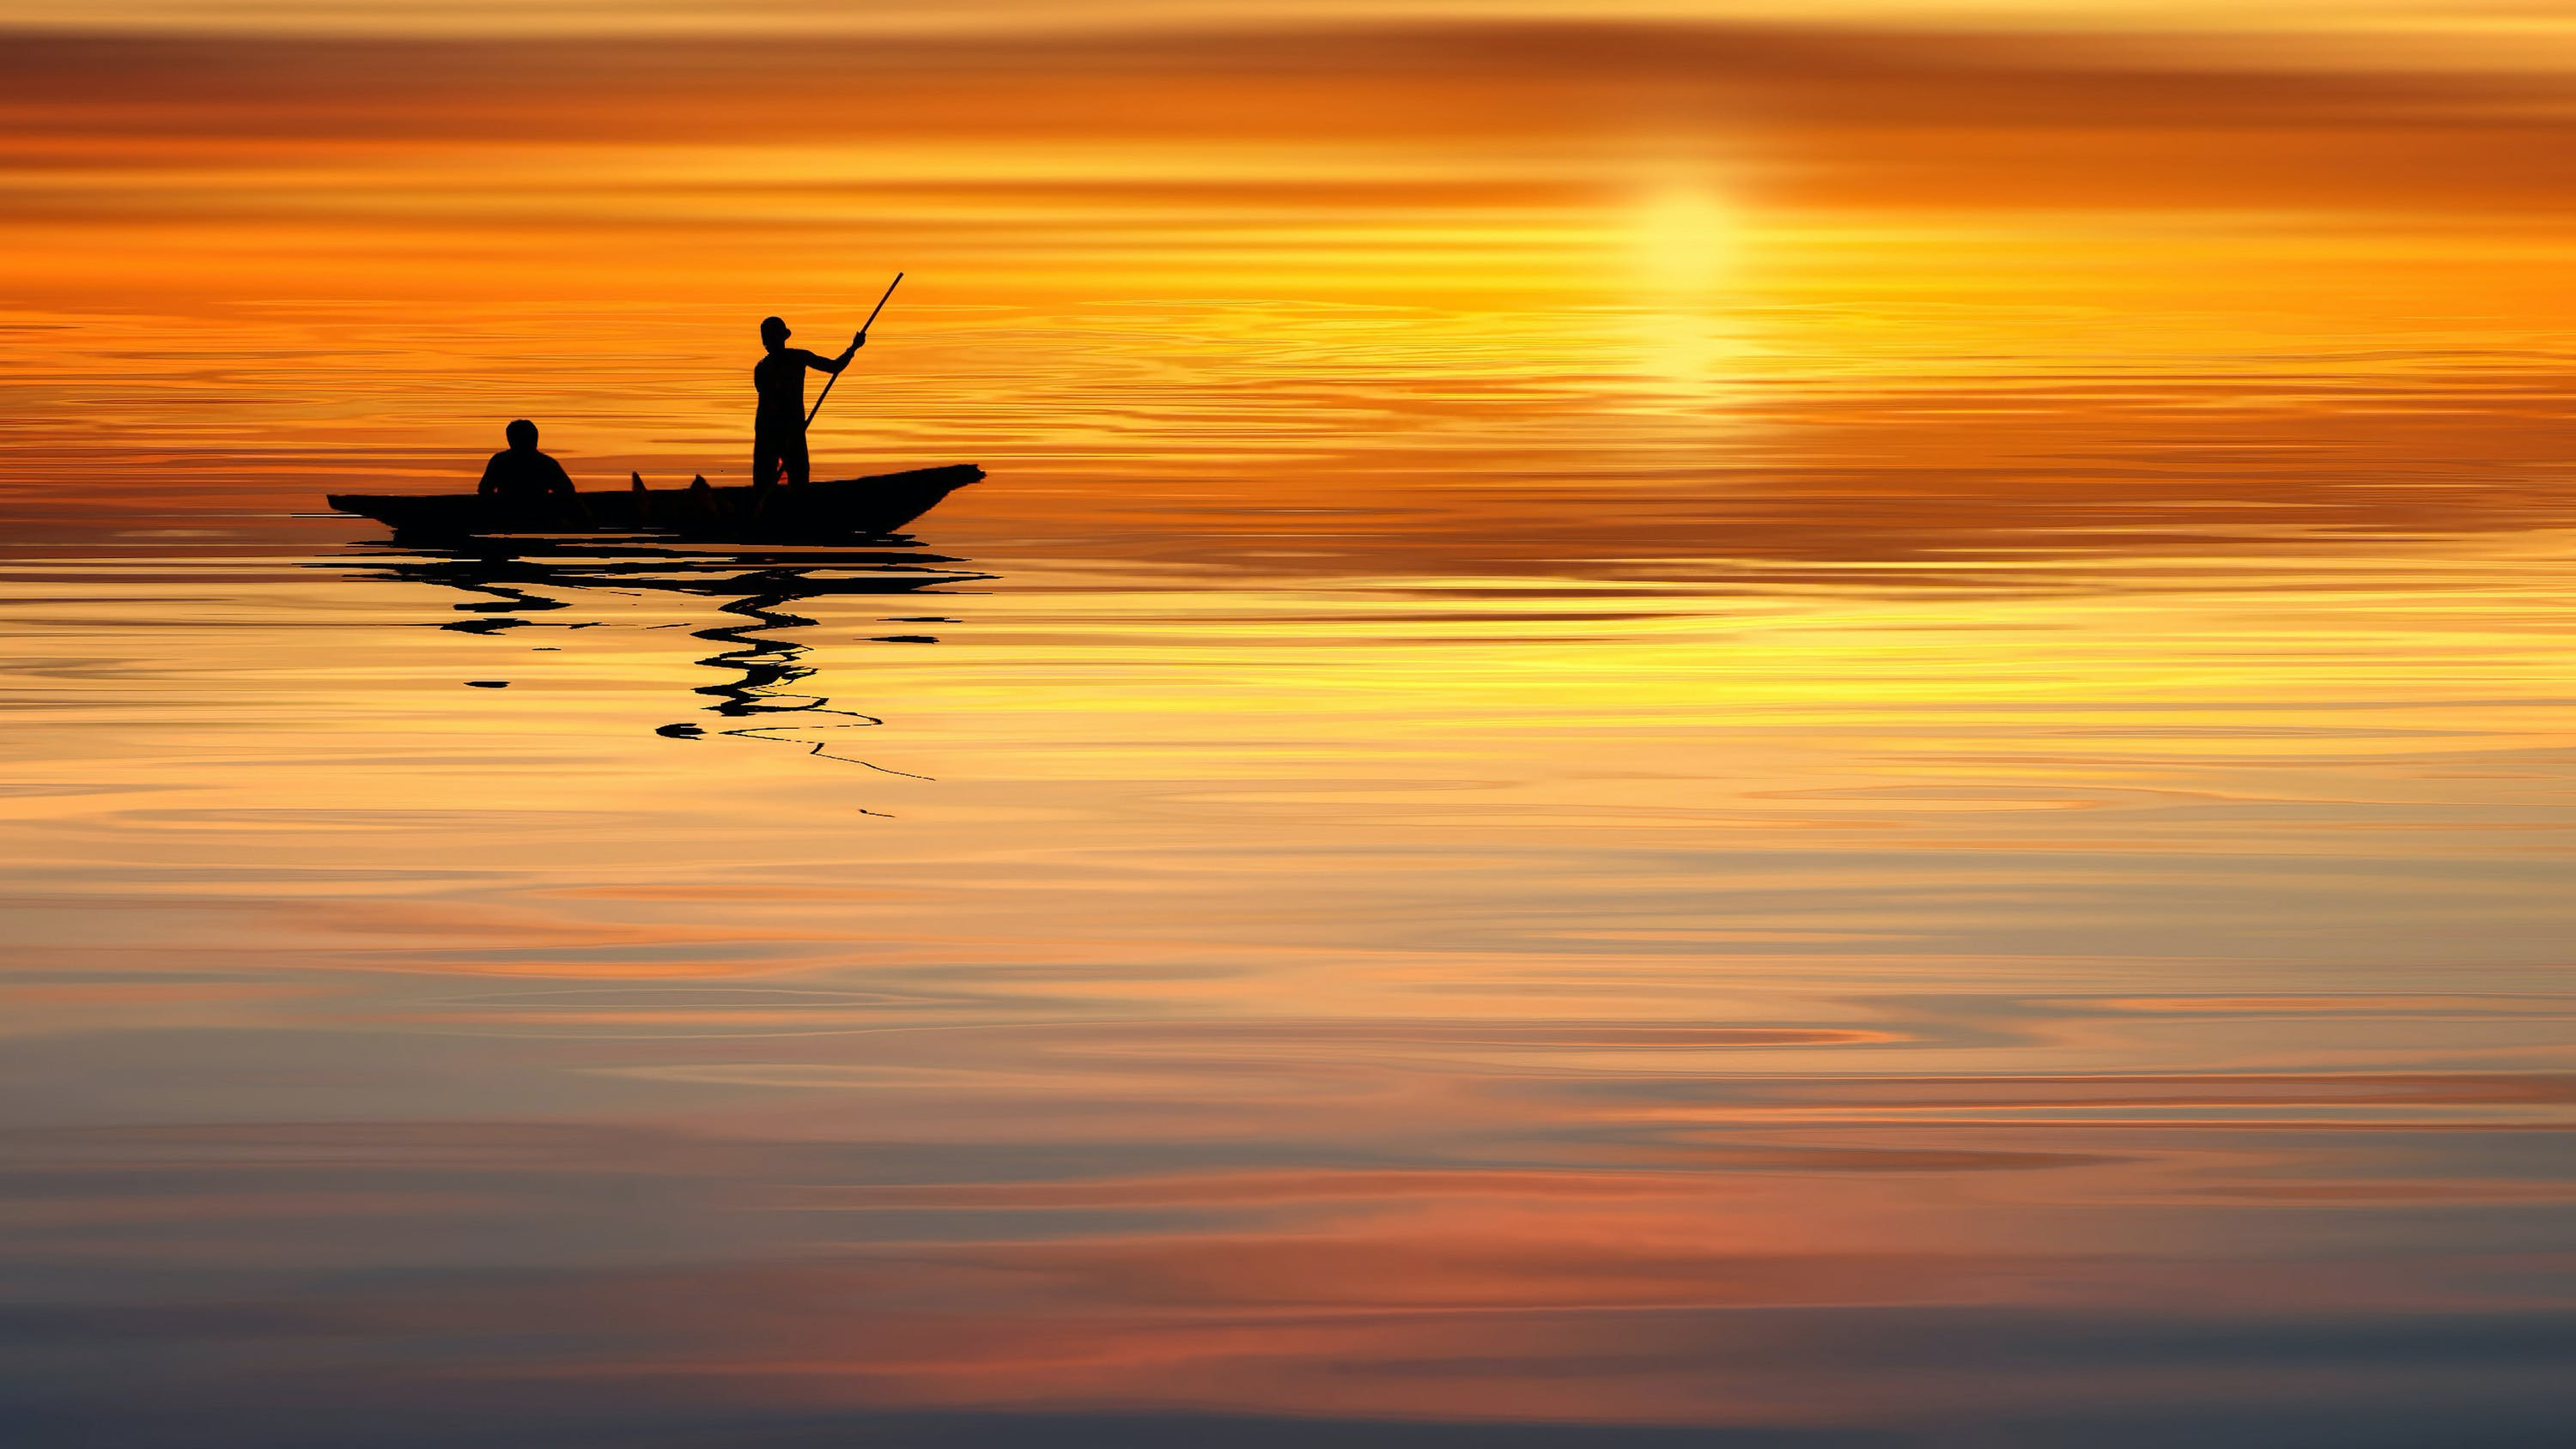 Silhouette Boat and Man Sailing on Ocean